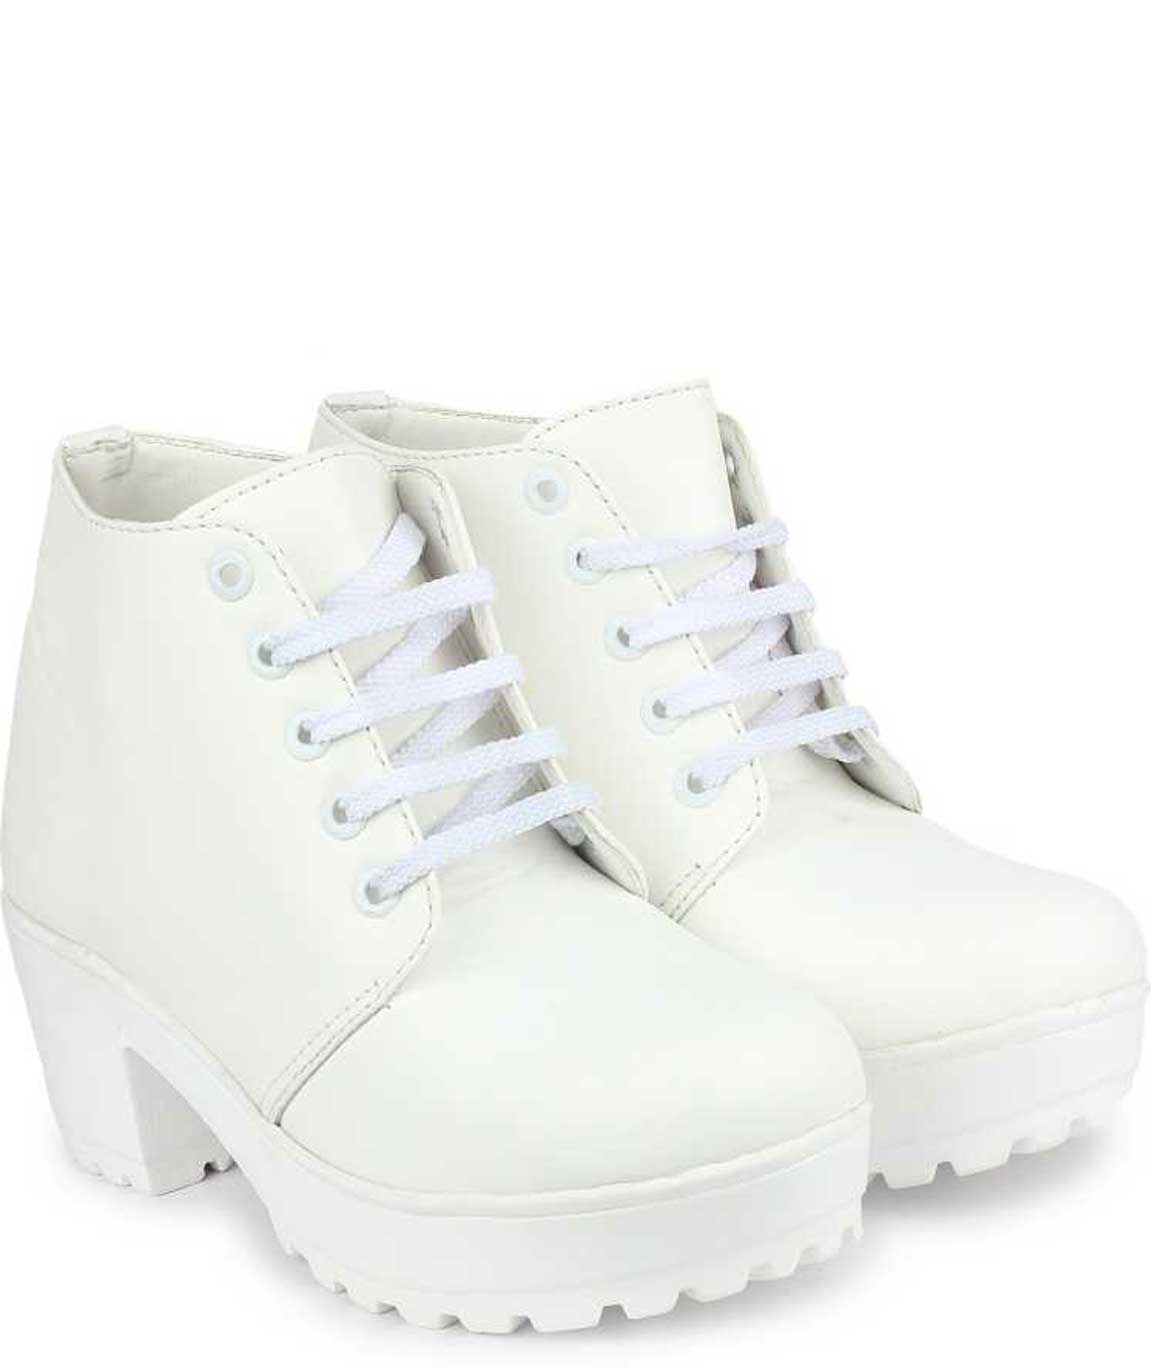 BOOT FOR WOMEN (WHITE)